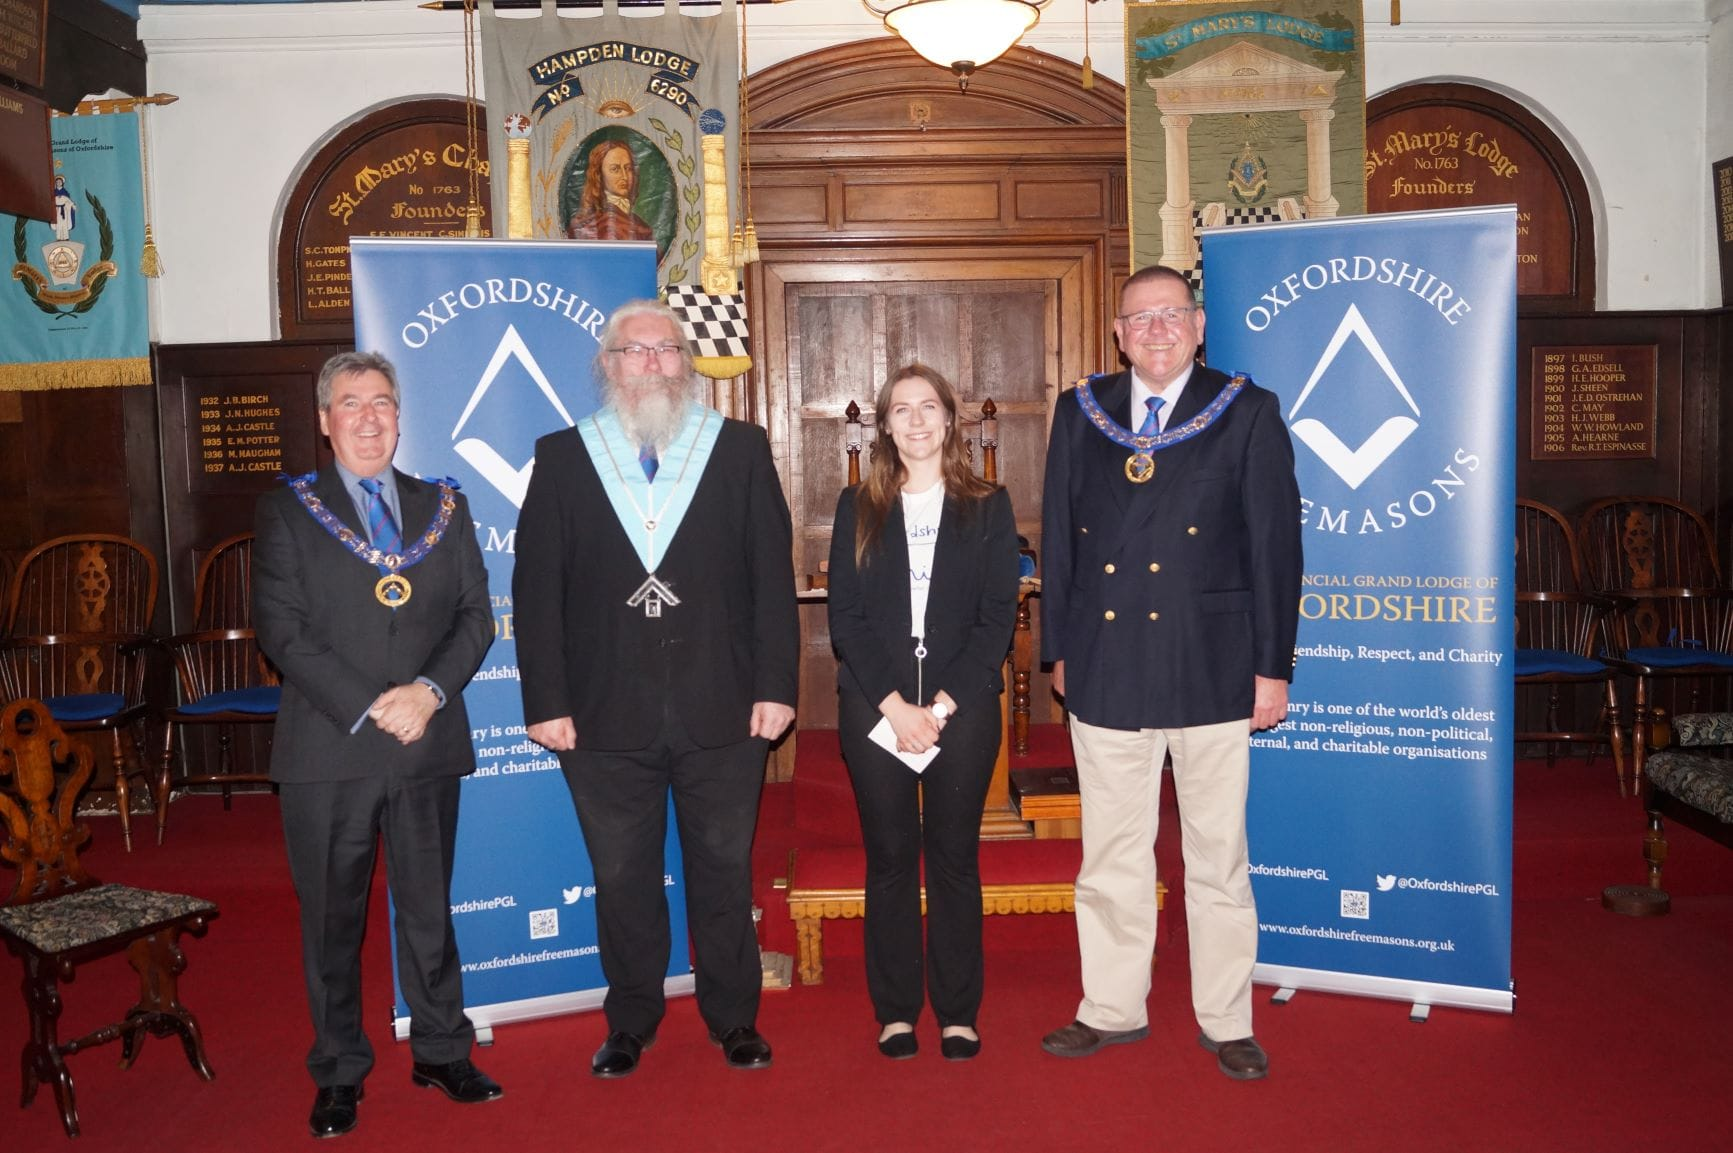 Hampden Lodge supports Oxfordshire Mind